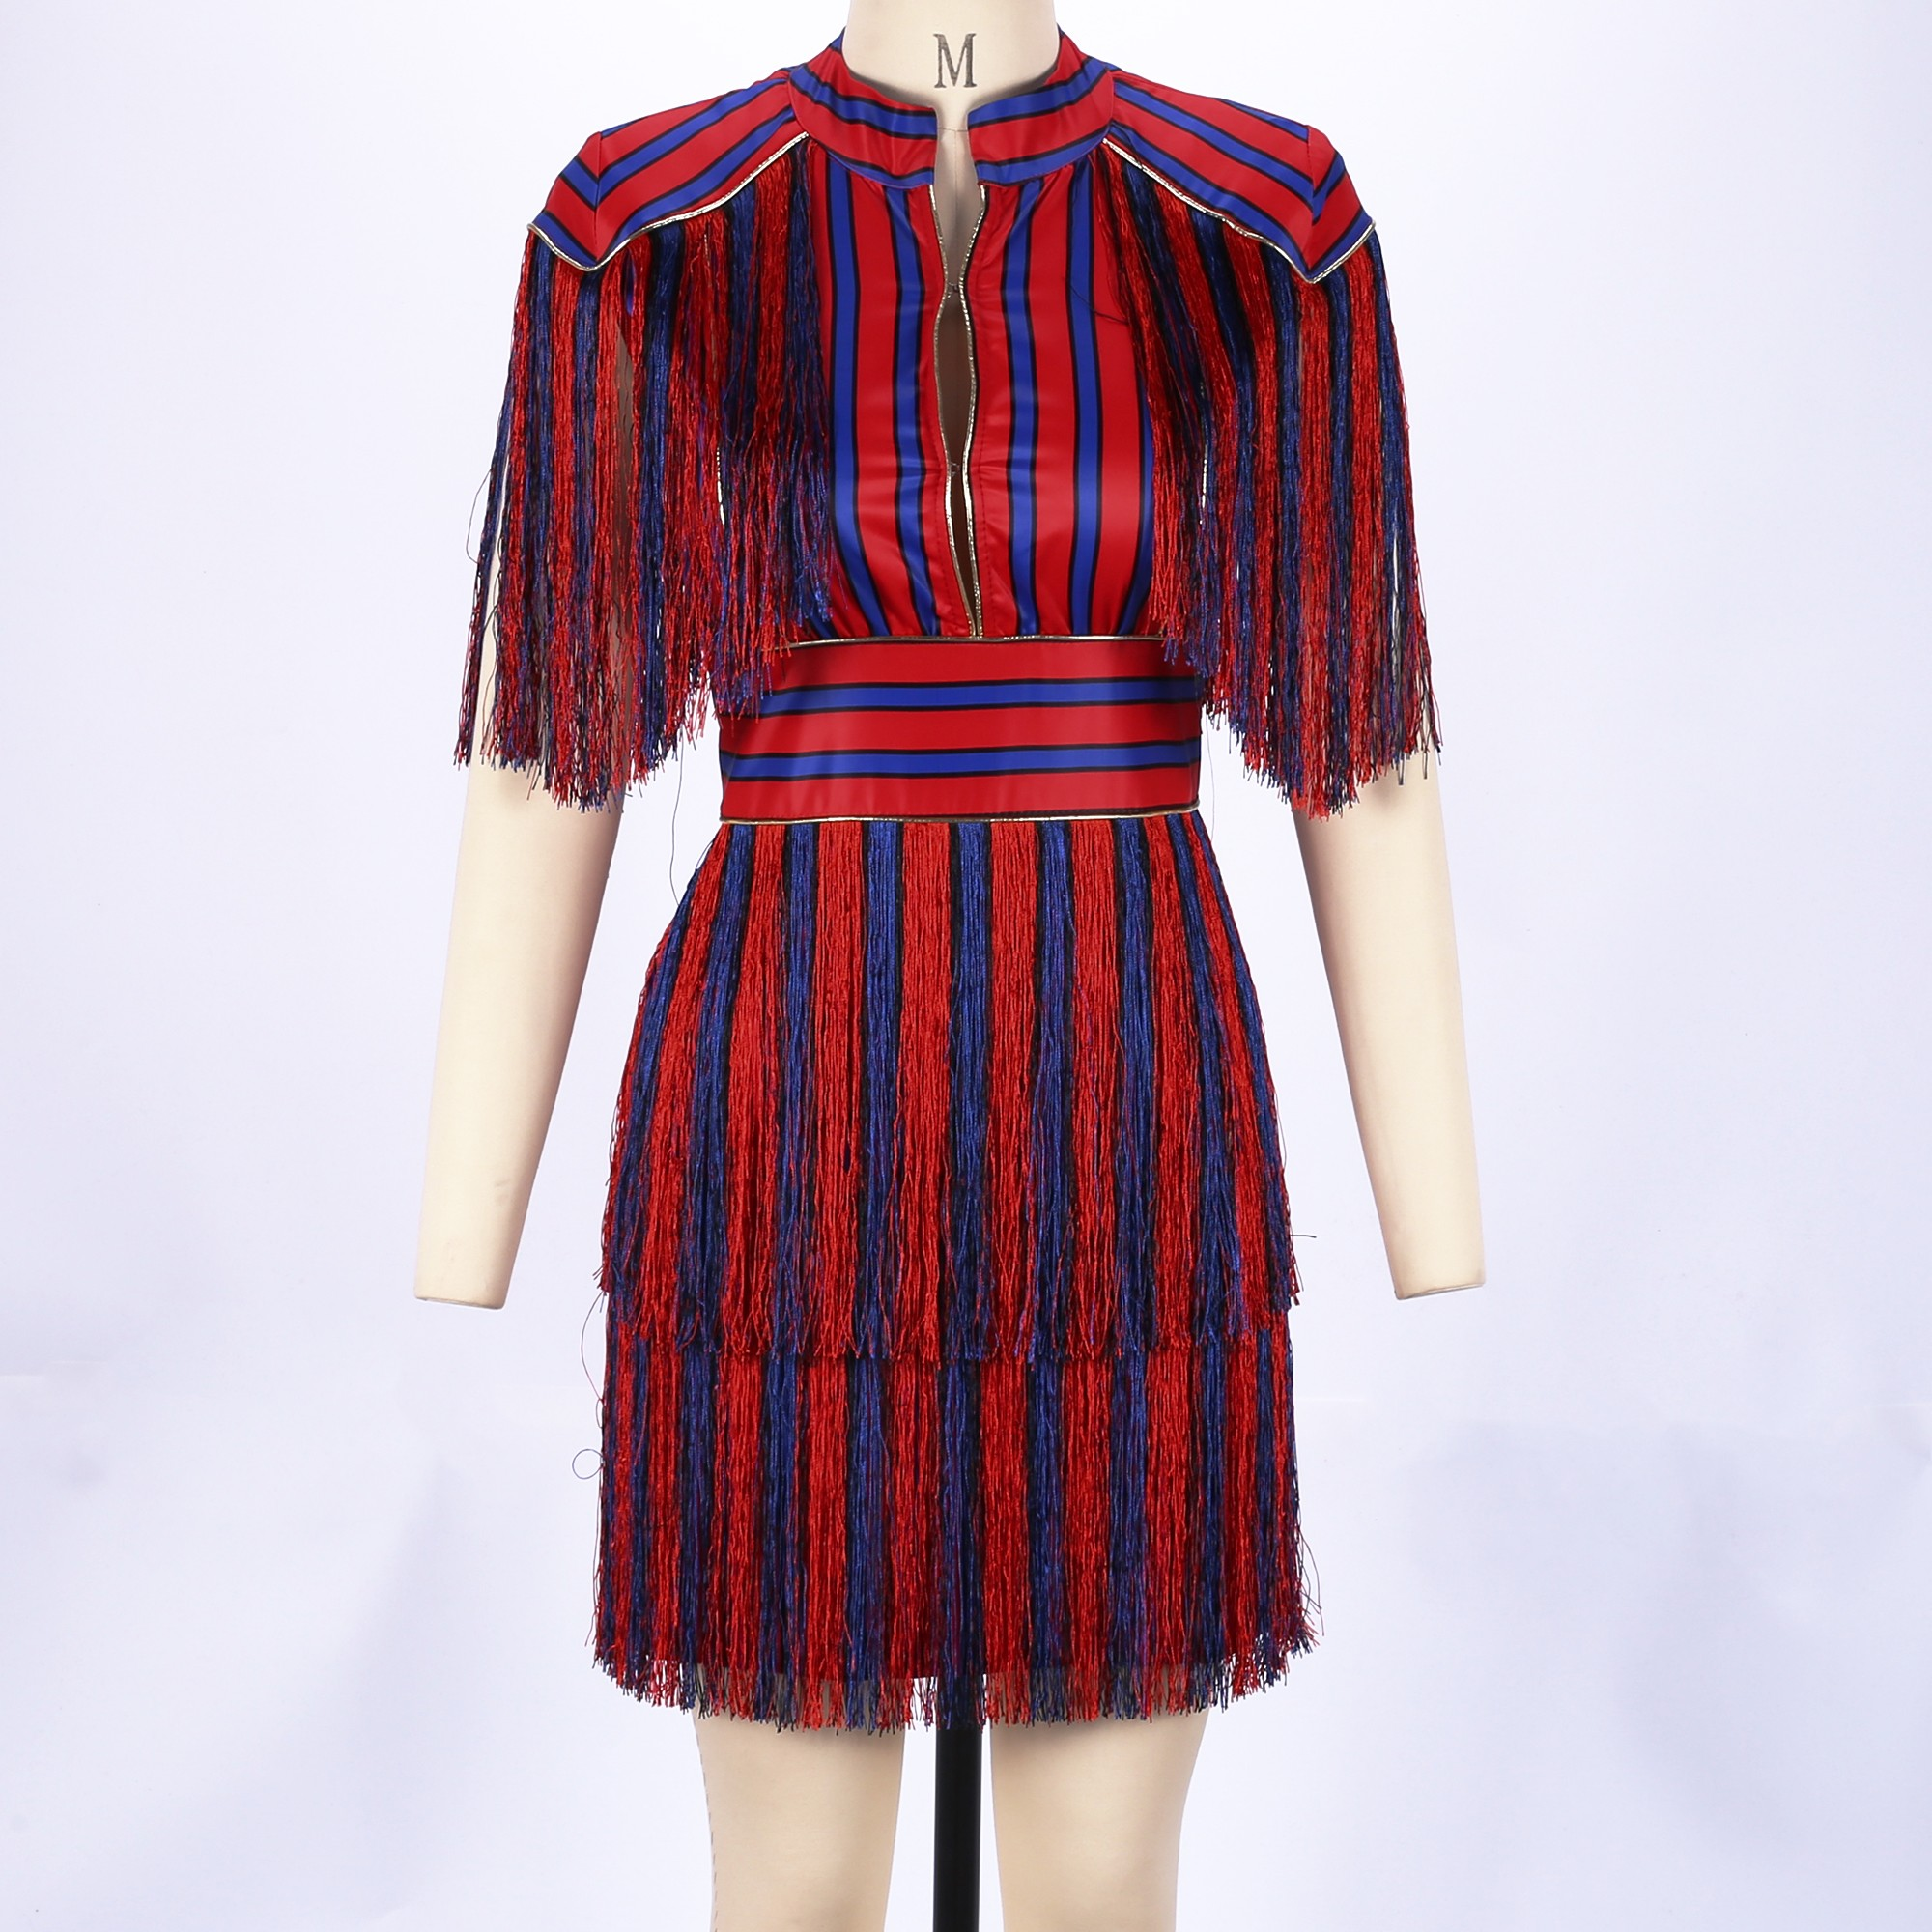 Red High Neck Short Sleeve Mini Tassel Vertical Stripe Party Bodycon Dress SP051-Red